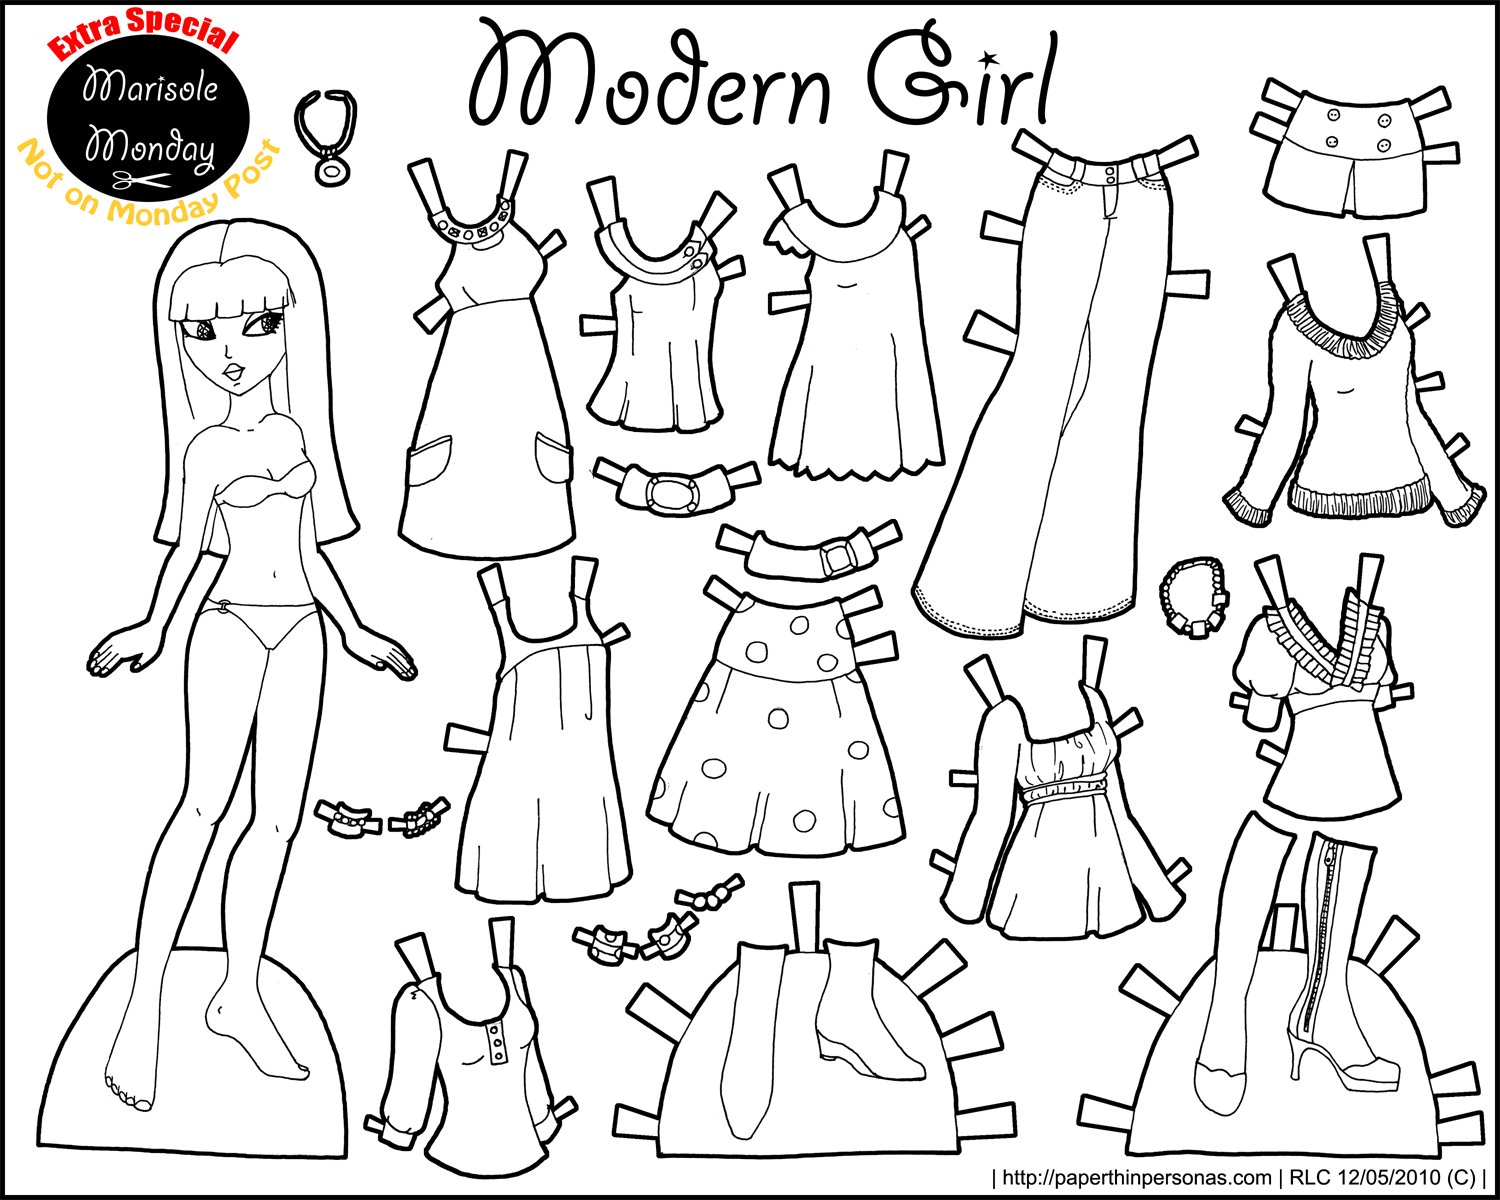 dress up paper dolls black and white printable paper doll from the marisole up paper dolls dress